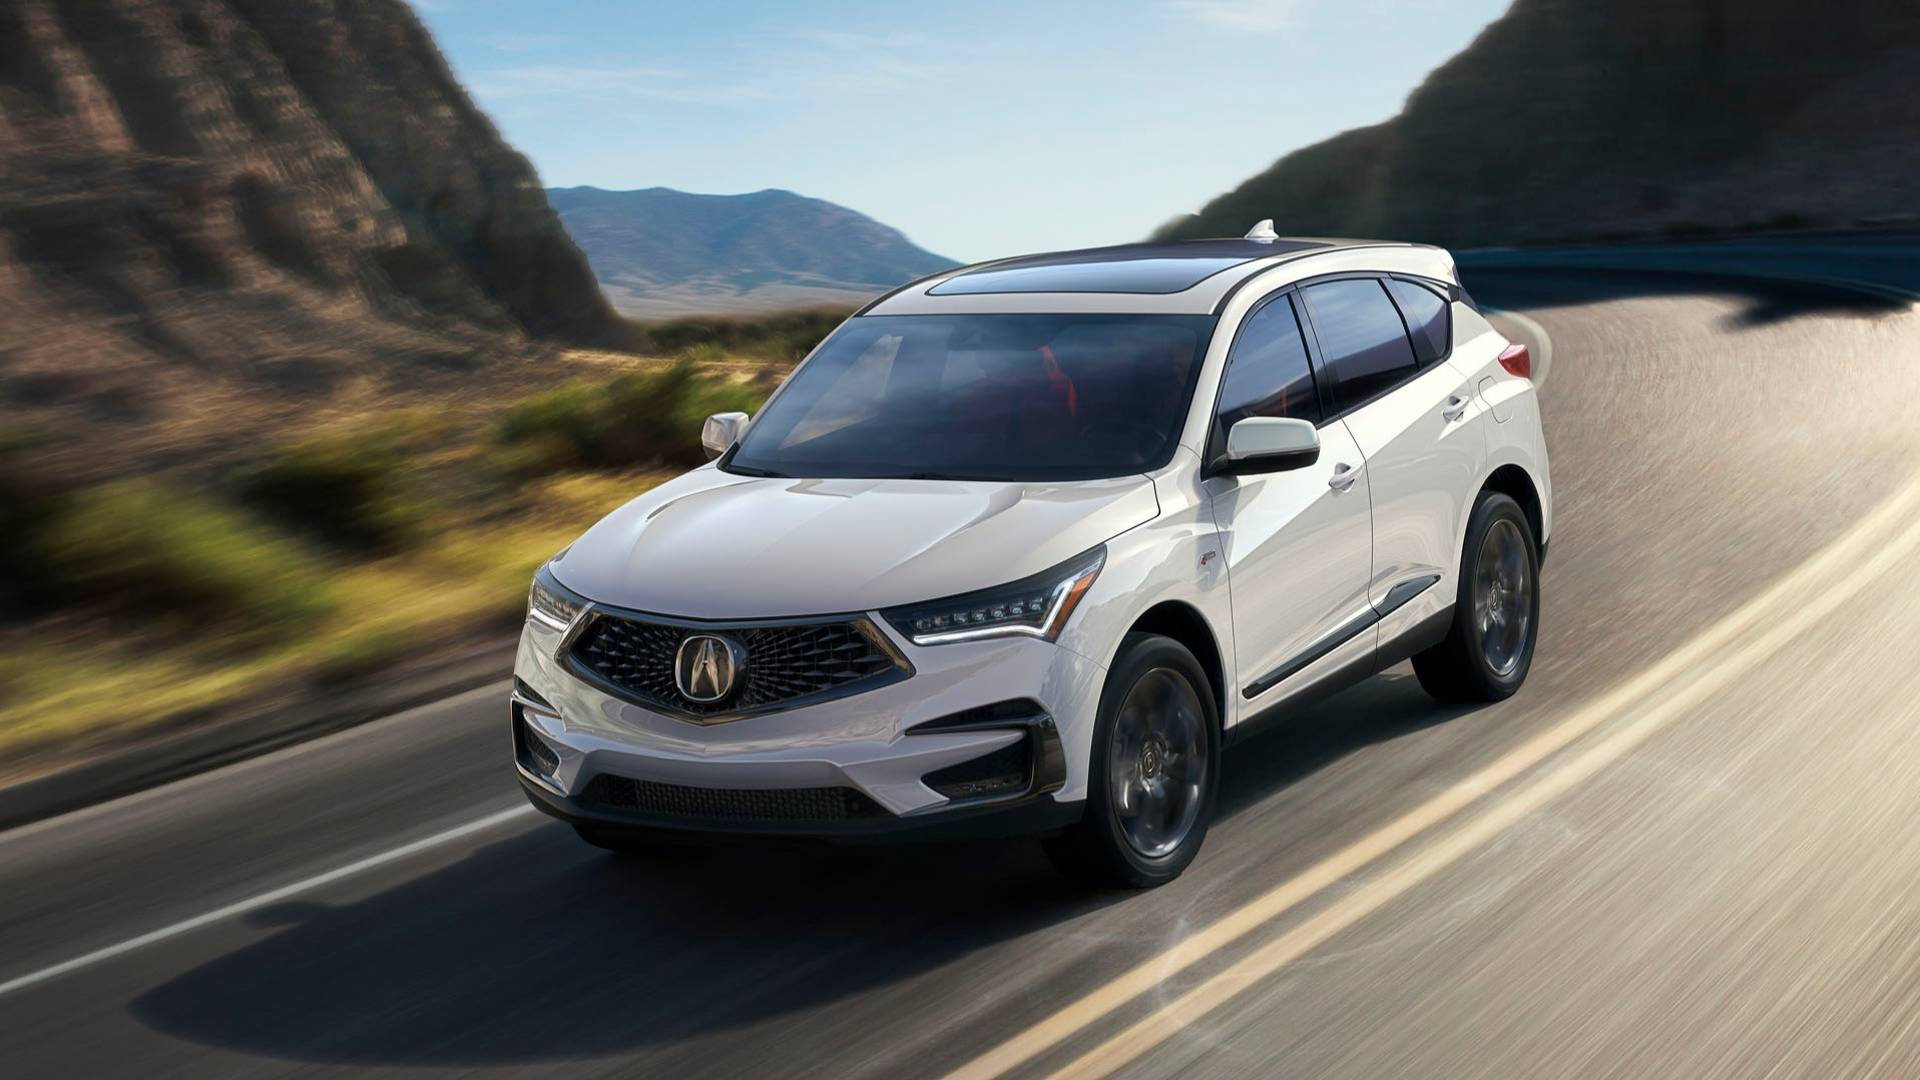 2019 Acura Rdx Makes World Debut In Ny Boasts 2 0 Liter